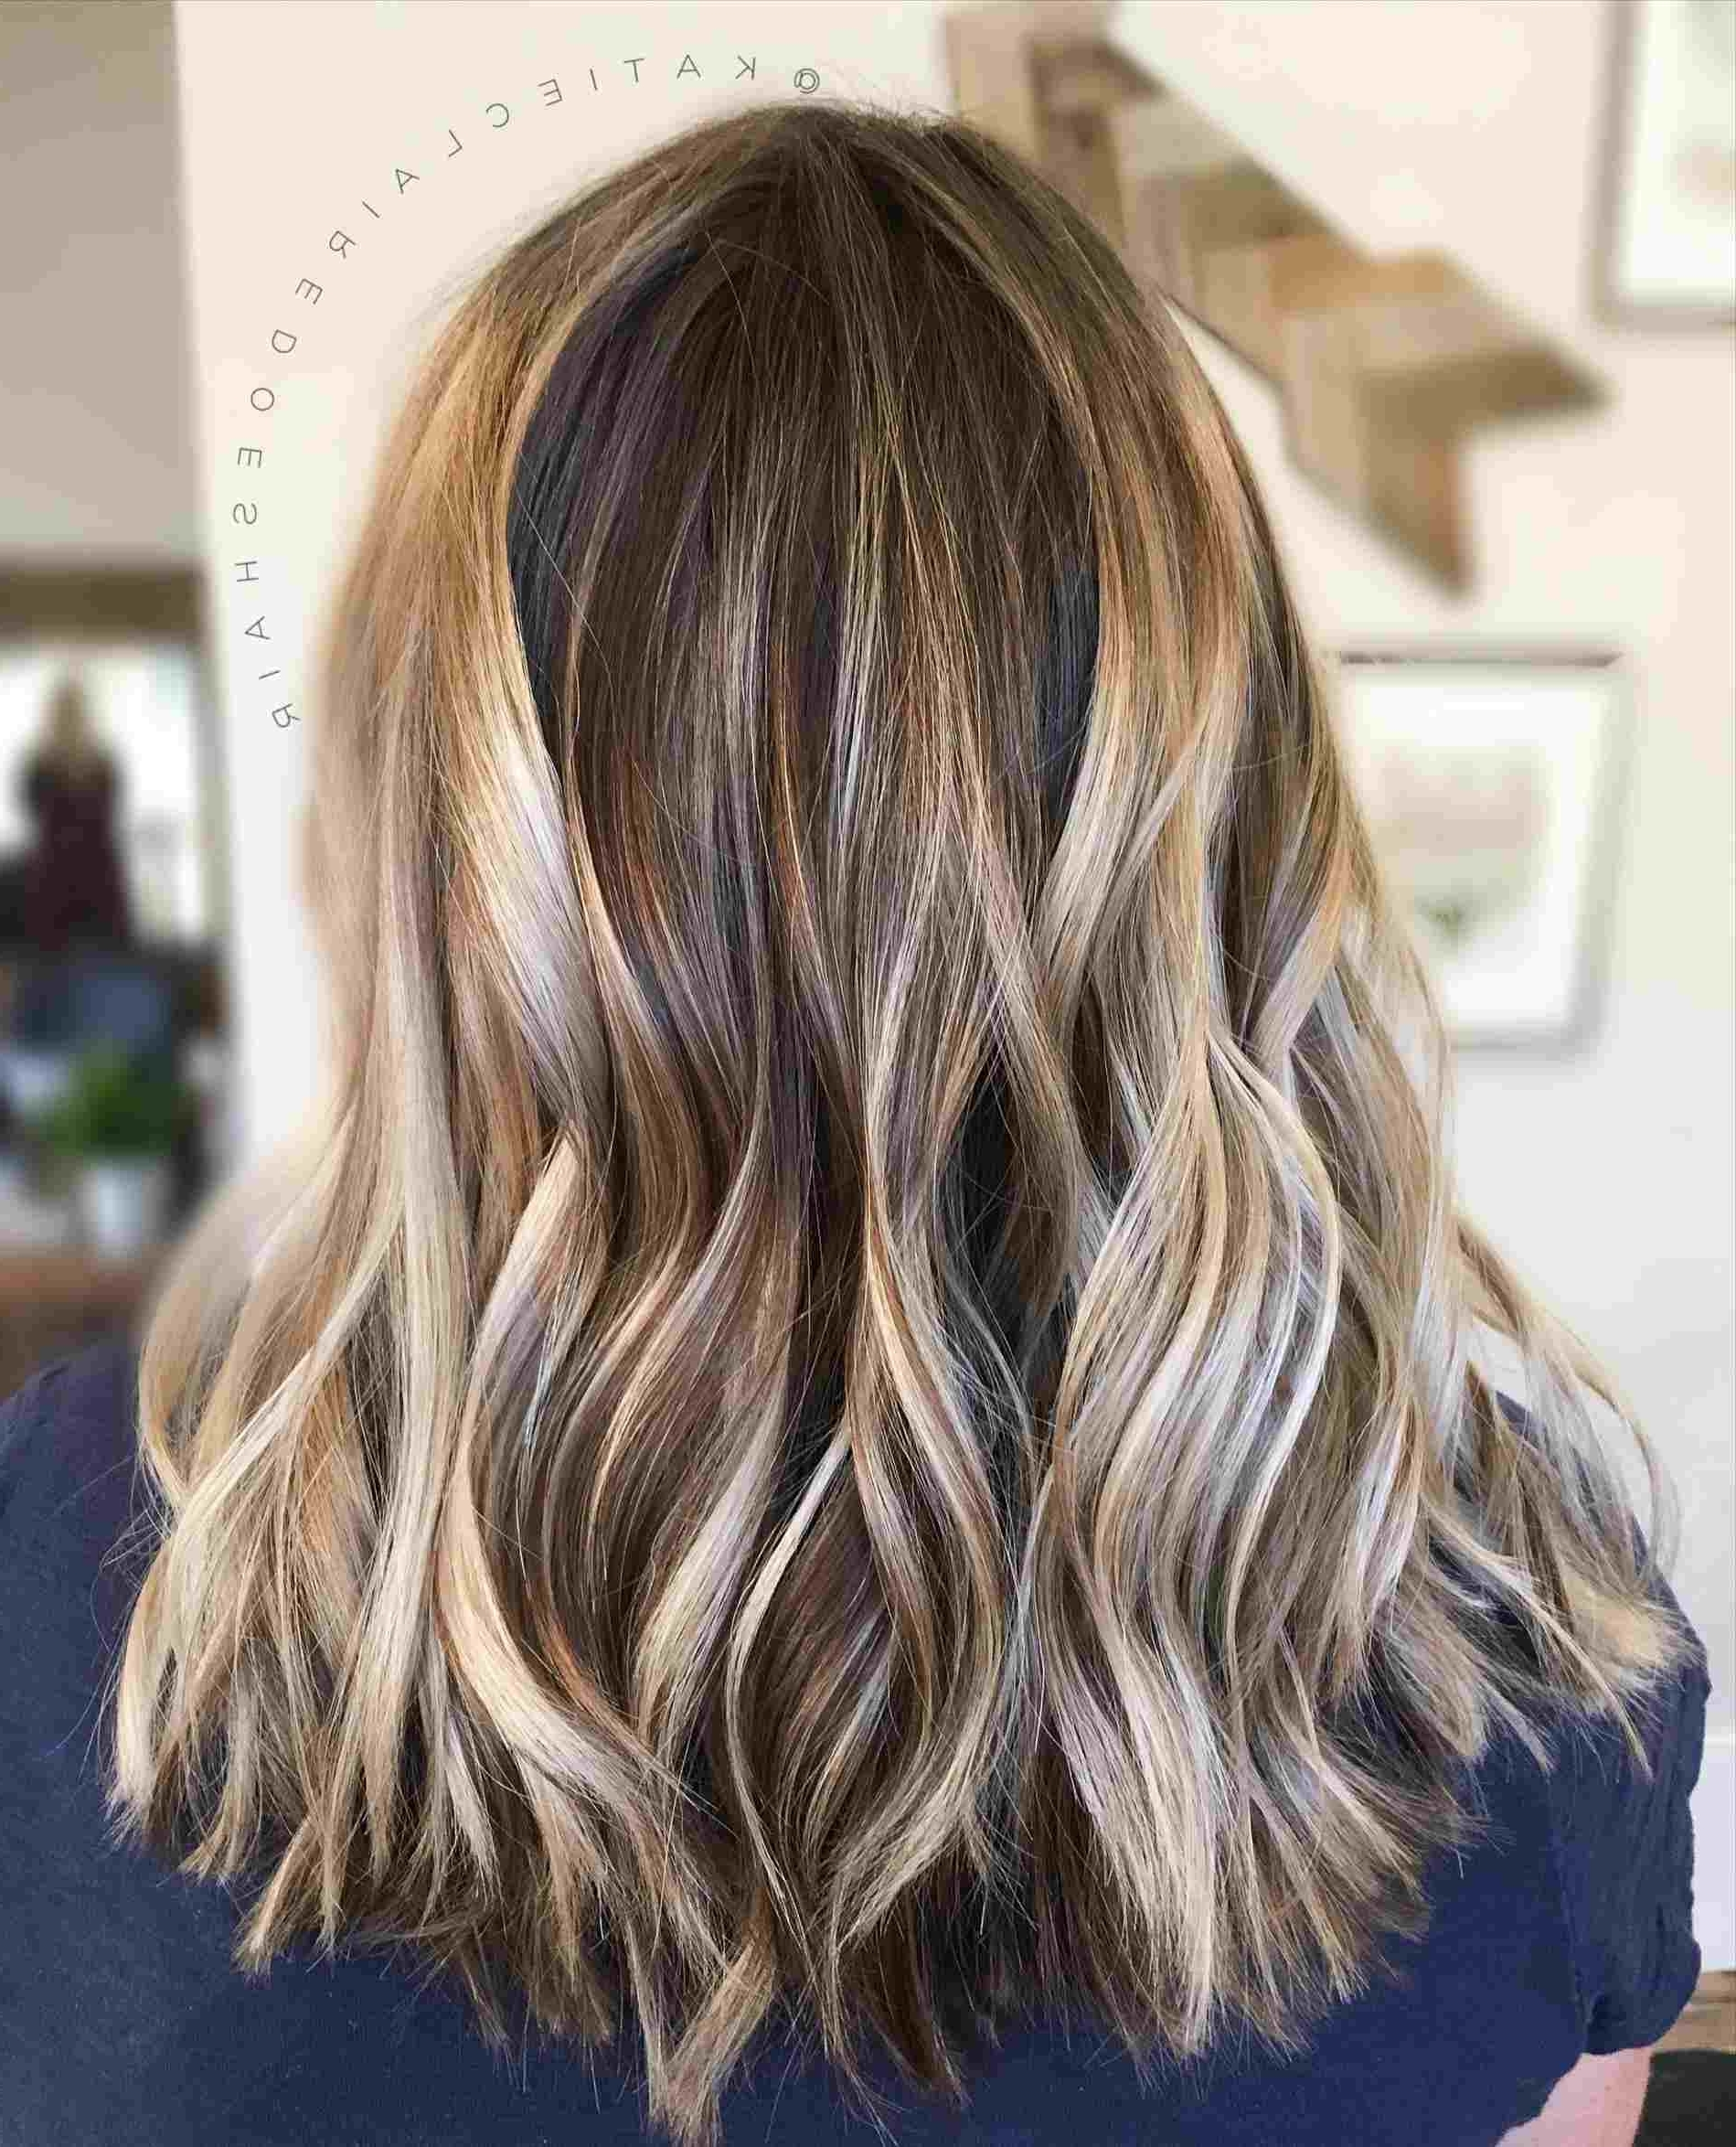 Well Liked Icy Highlights And Loose Curls Blonde Hairstyles Intended For Cool Dark Hair Balayage Ashy Icy Blonde Highlights Shadow Root Waves (View 8 of 20)